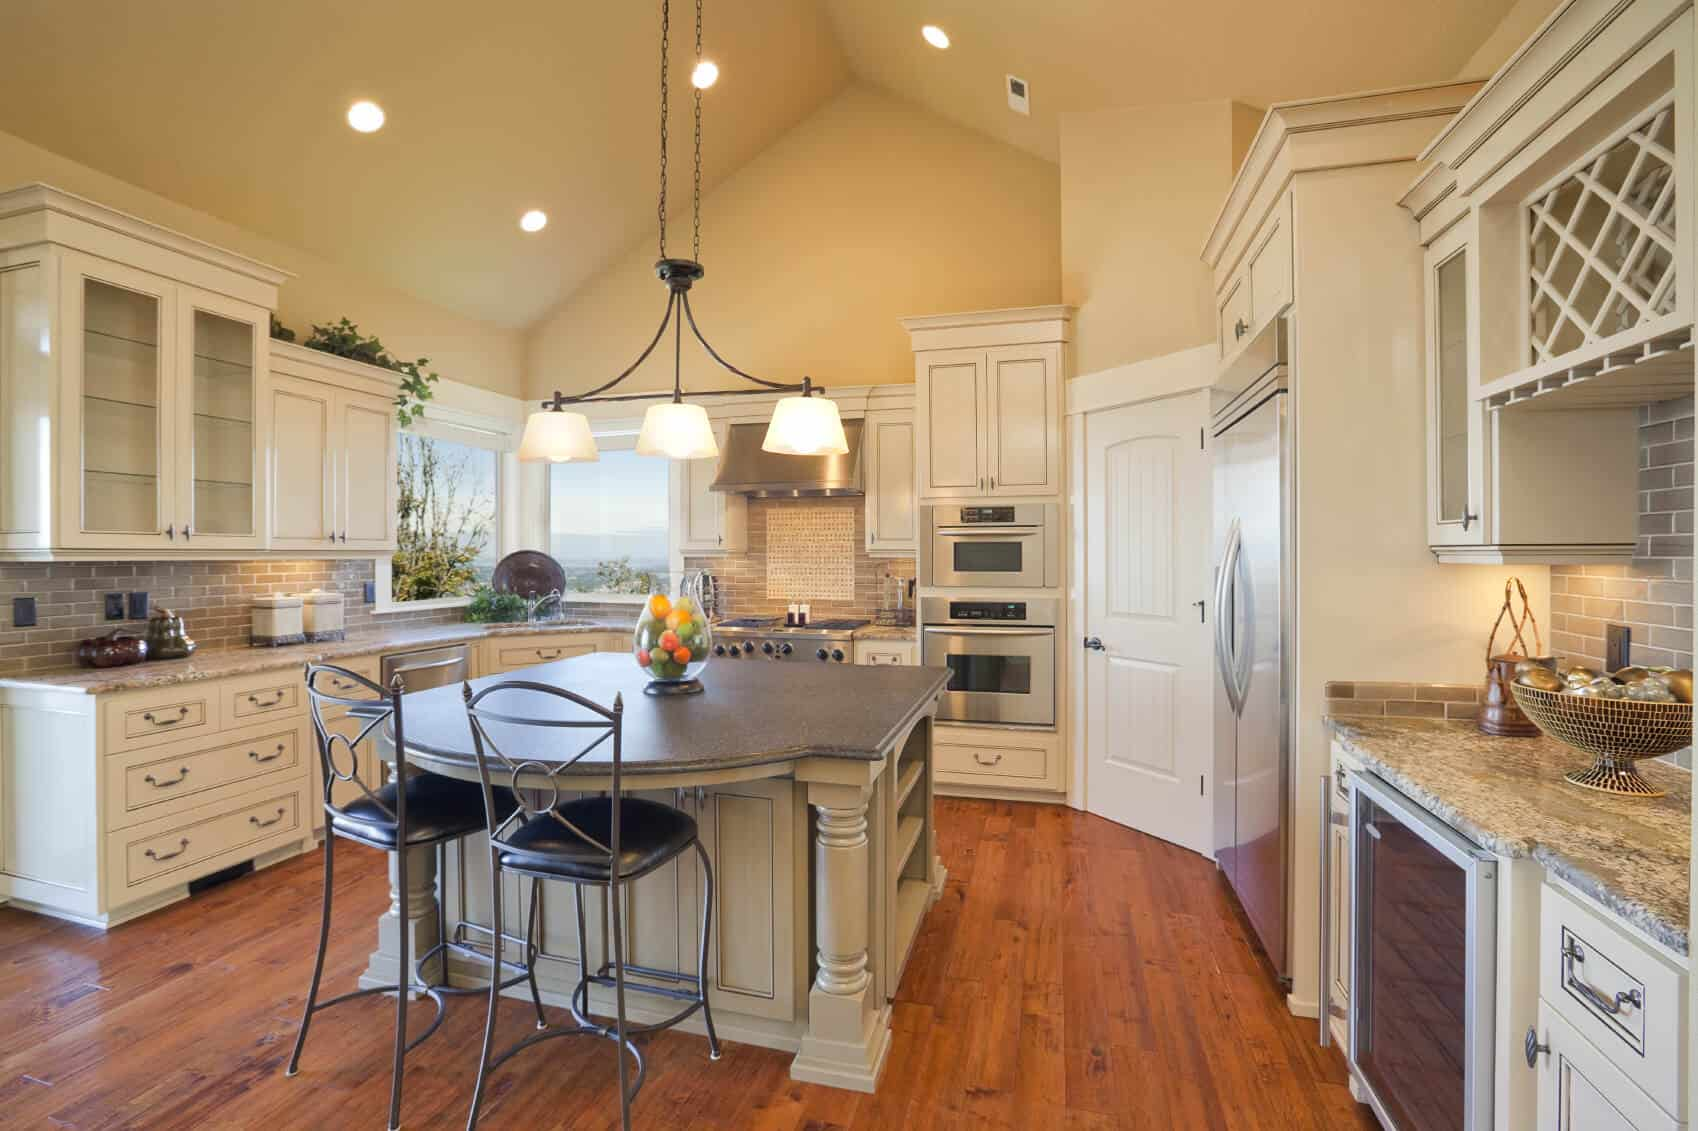 Large U-shaped kitchen with tall ceiling, chandelier, picture windows and hardwood flooring.